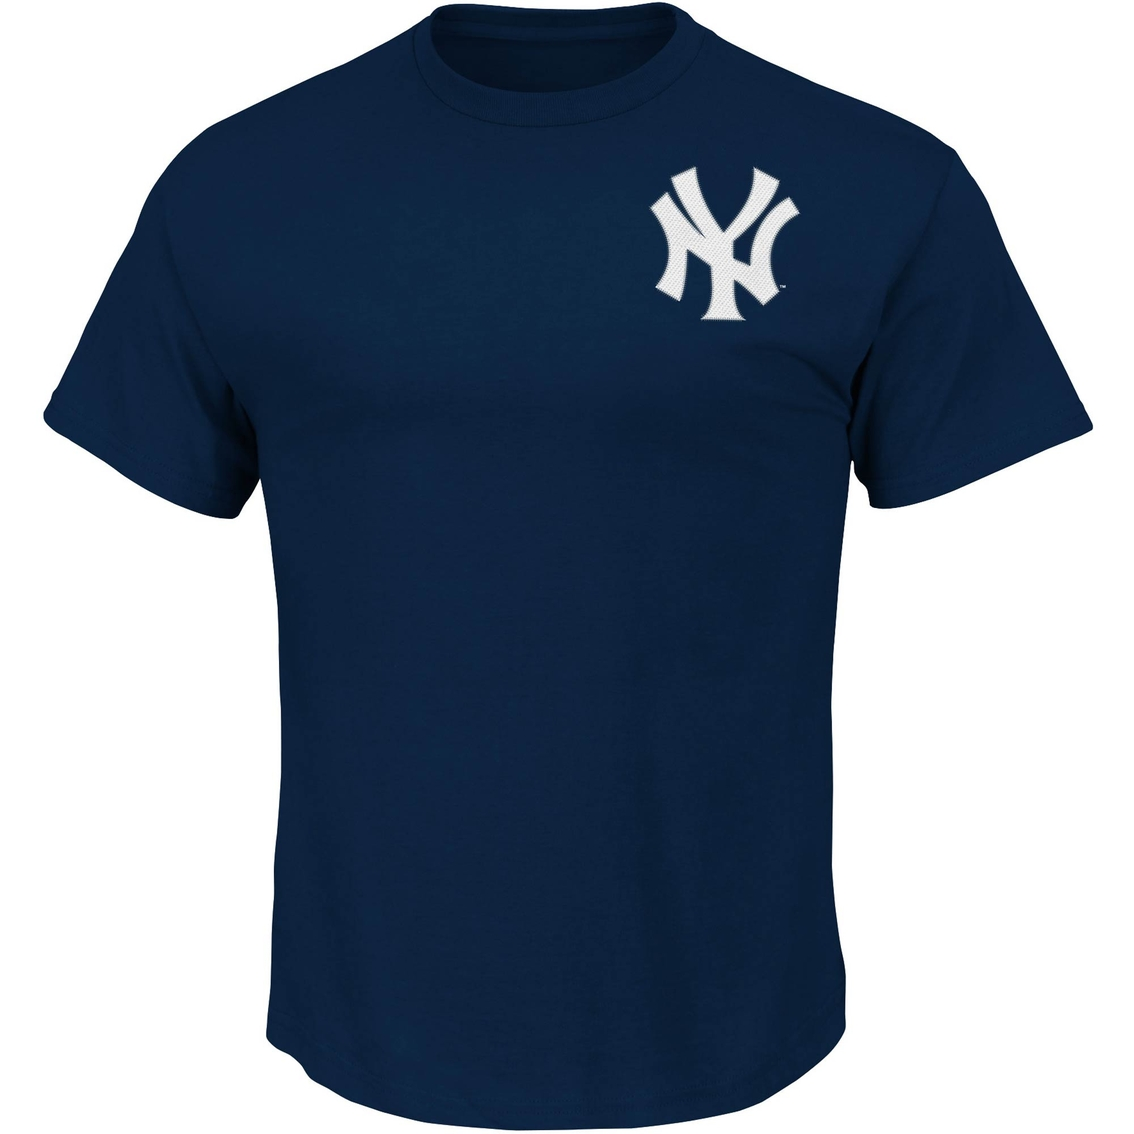 Majestic Mlb New York Yankees Men S Wordmark Tee Shirts